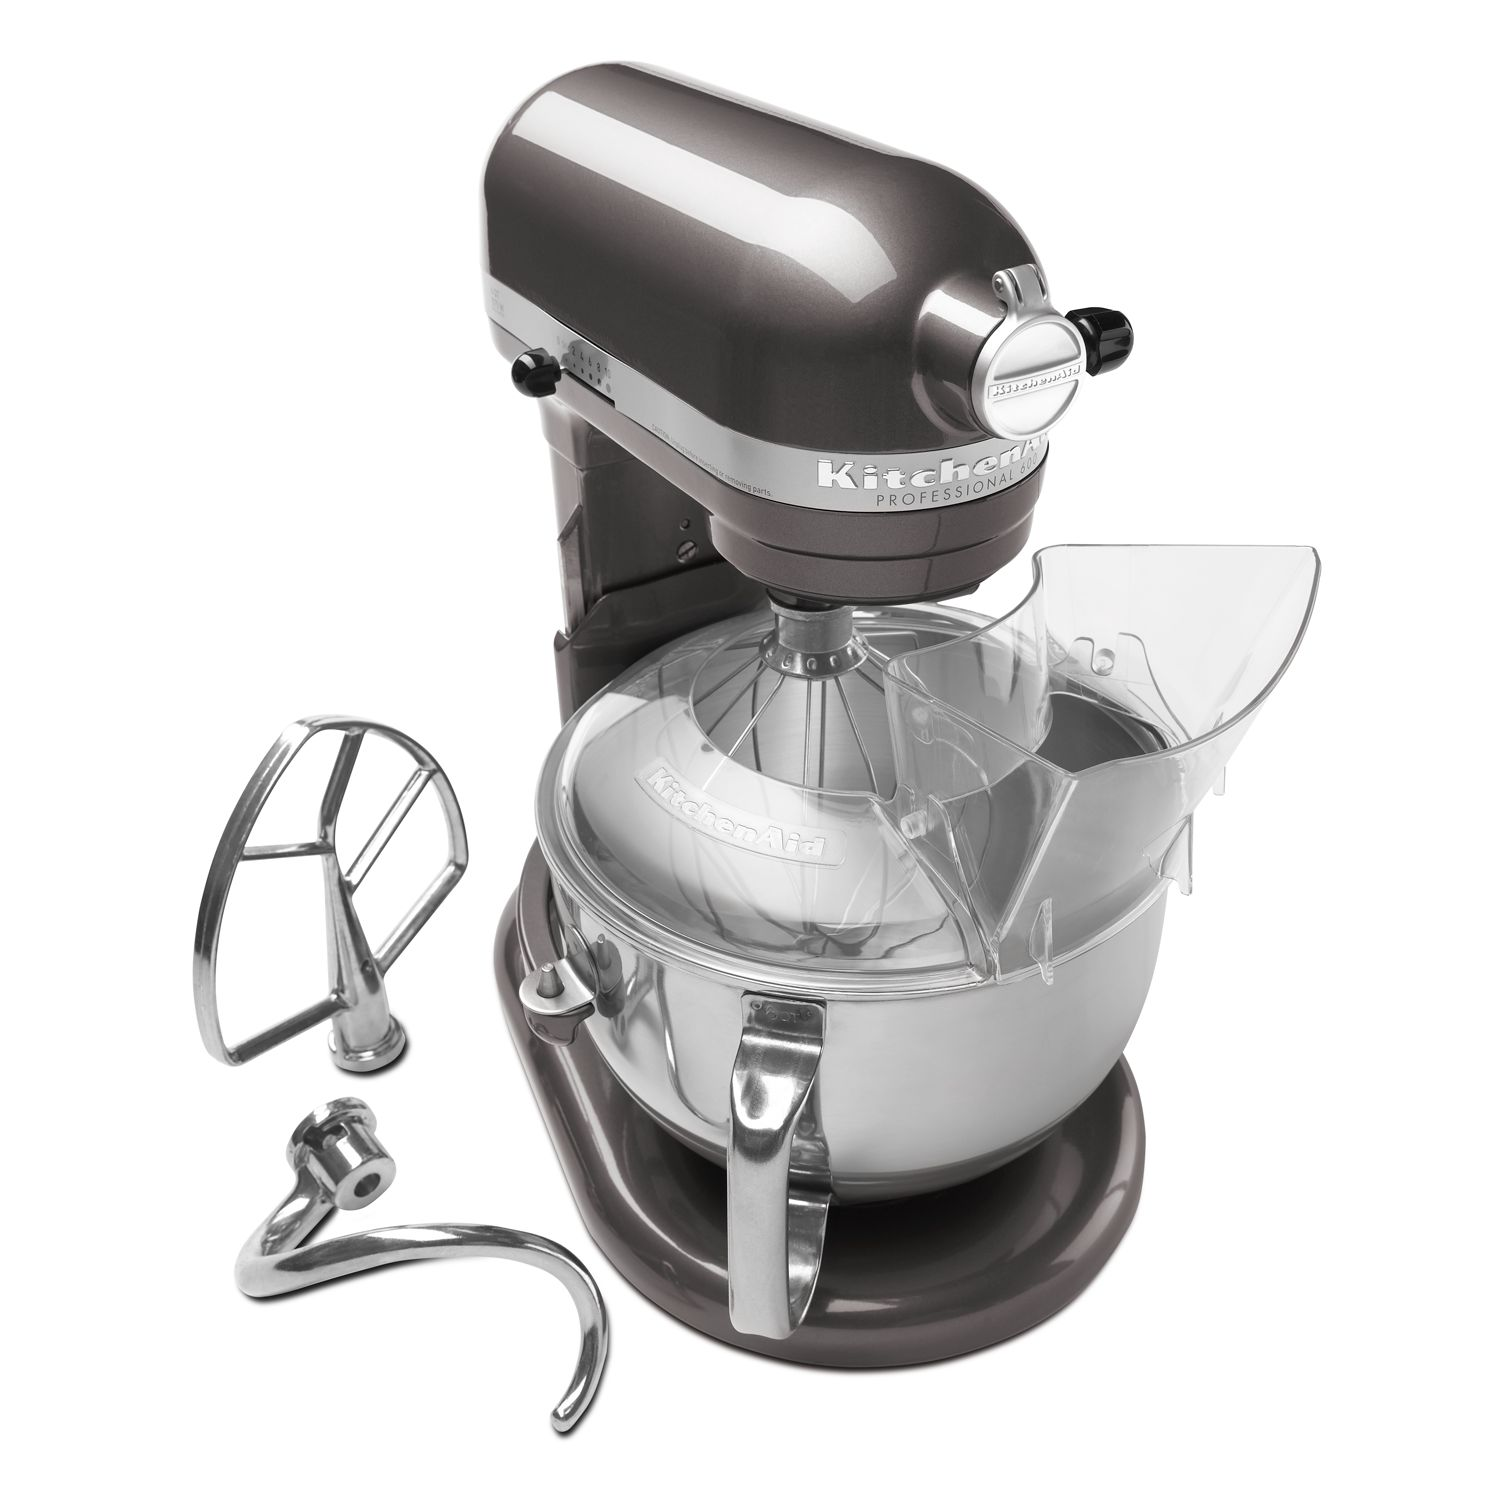 kitchenaid kp26m1x pro 600 series 6 qt bowl lift stand mixer rh kohls com